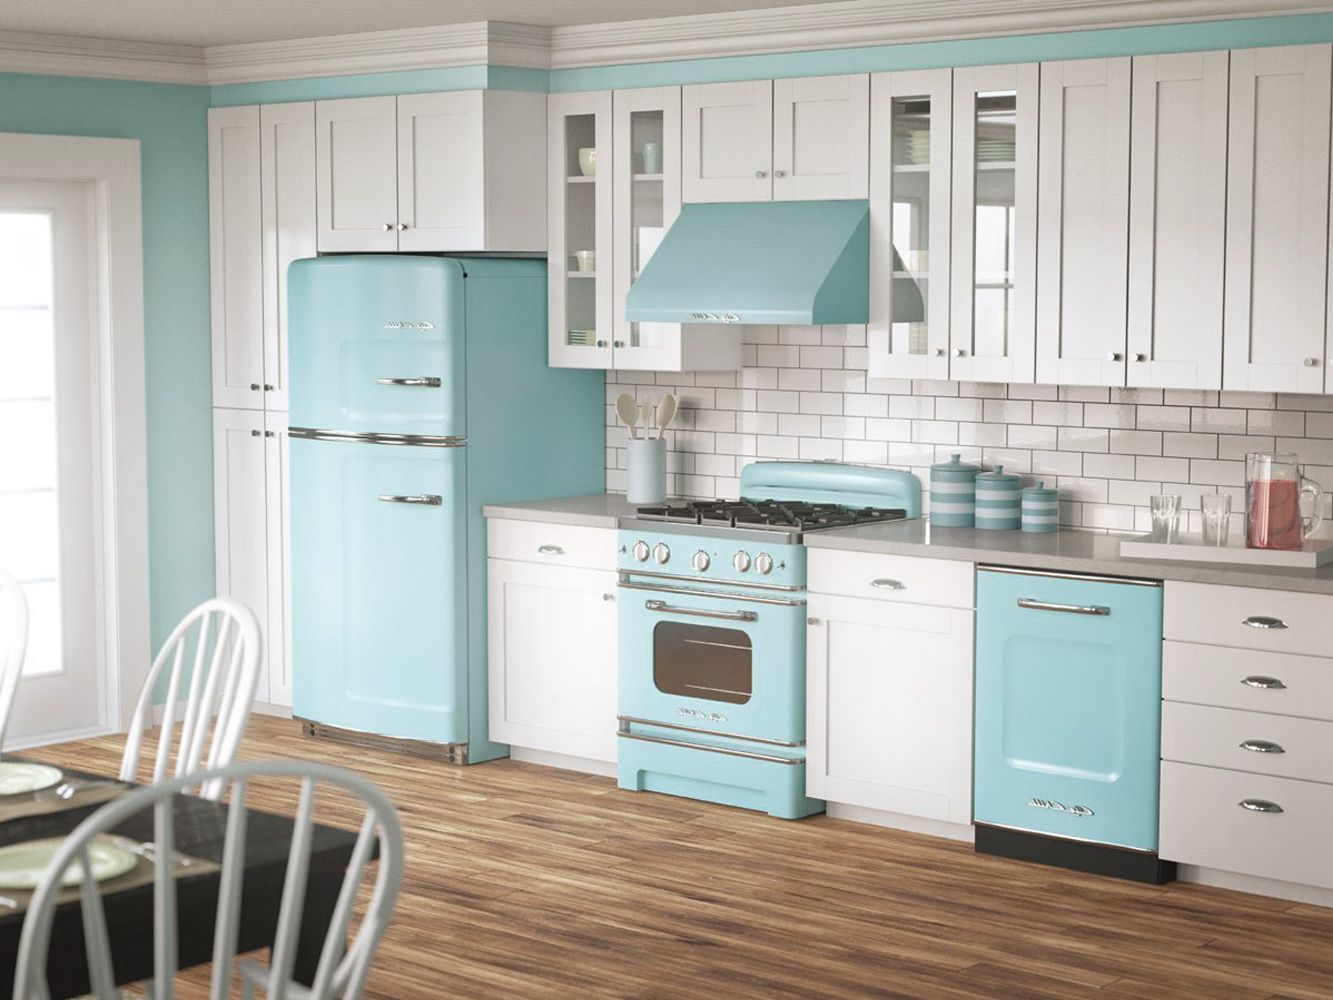 1950S Kitchens Simple 1950S Pastel Colors Kitchen Interior Ideas  Home Design Design Decoration